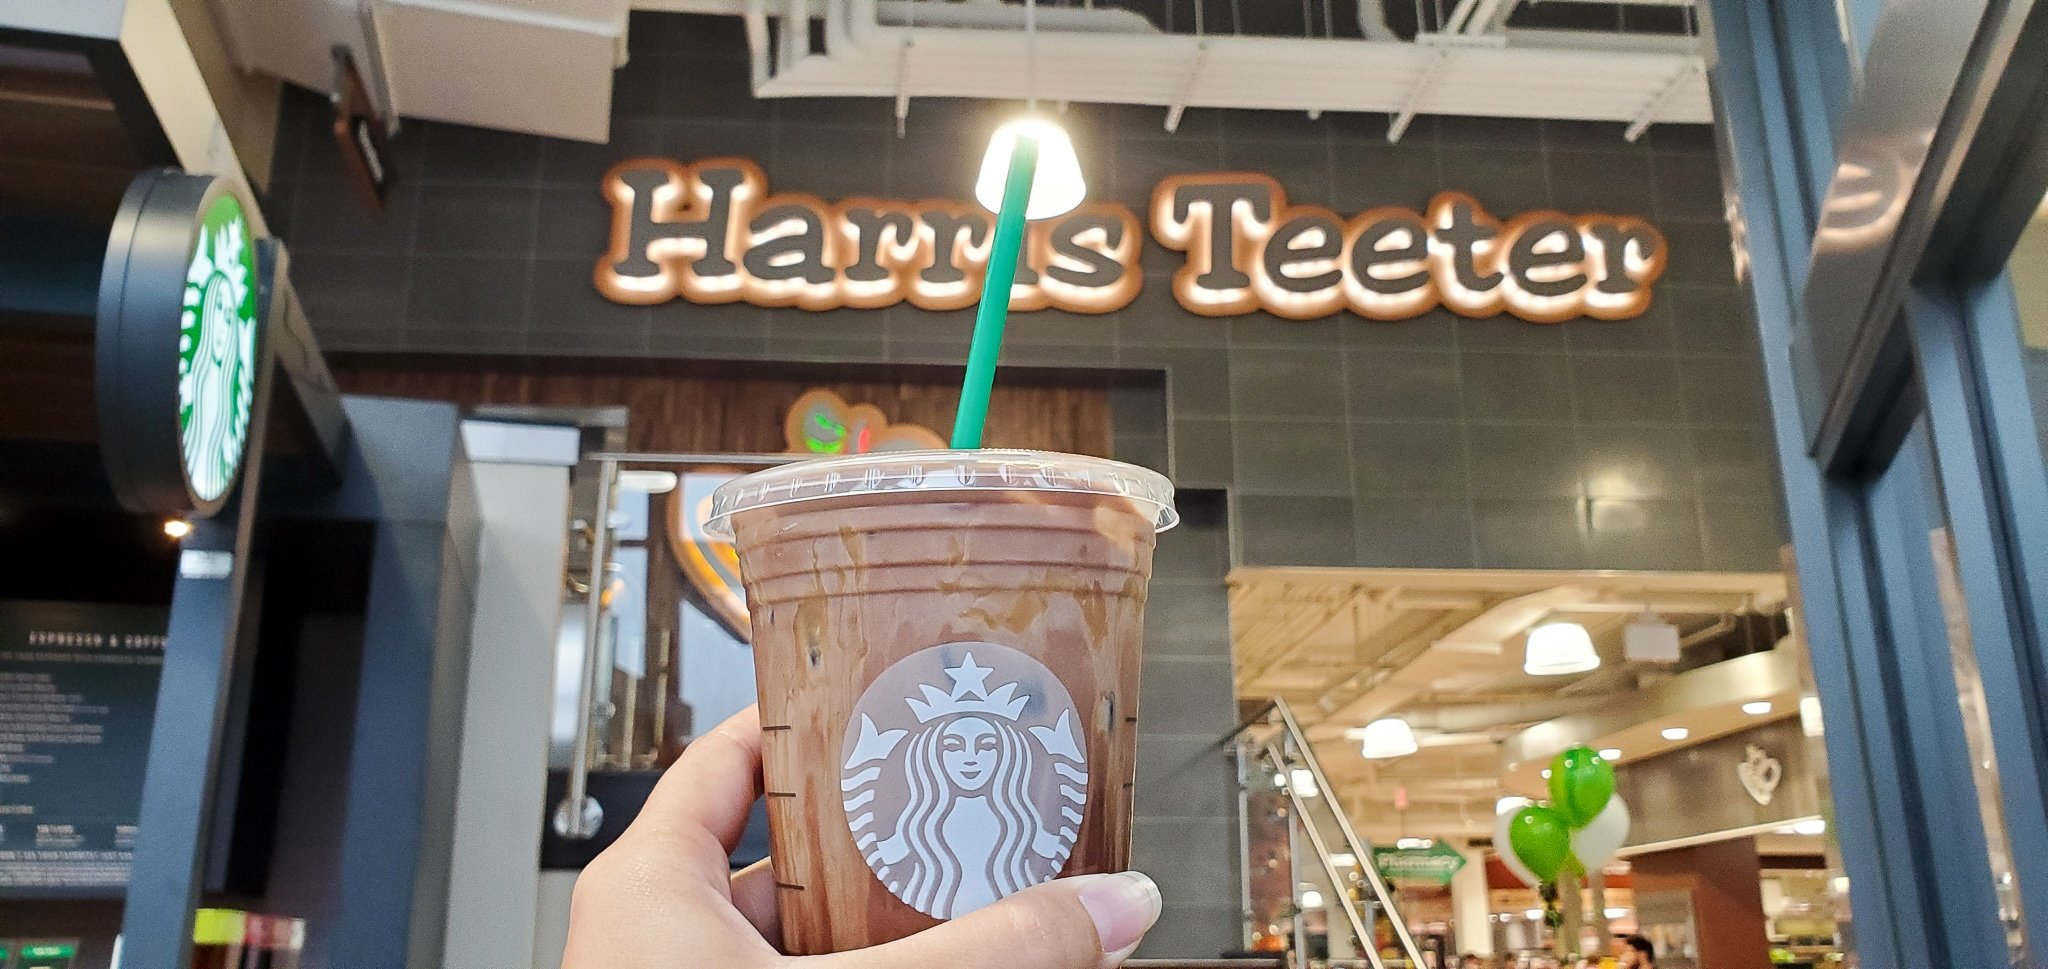 Harris Teeter Starbucks. If your family is as busy as mine, then the Fresh Foods Market is a great place for you to grab freshly made meals and snacks. There is something for the whole family in this section, everything from Store-made Pizza to hand-rolled sushi.